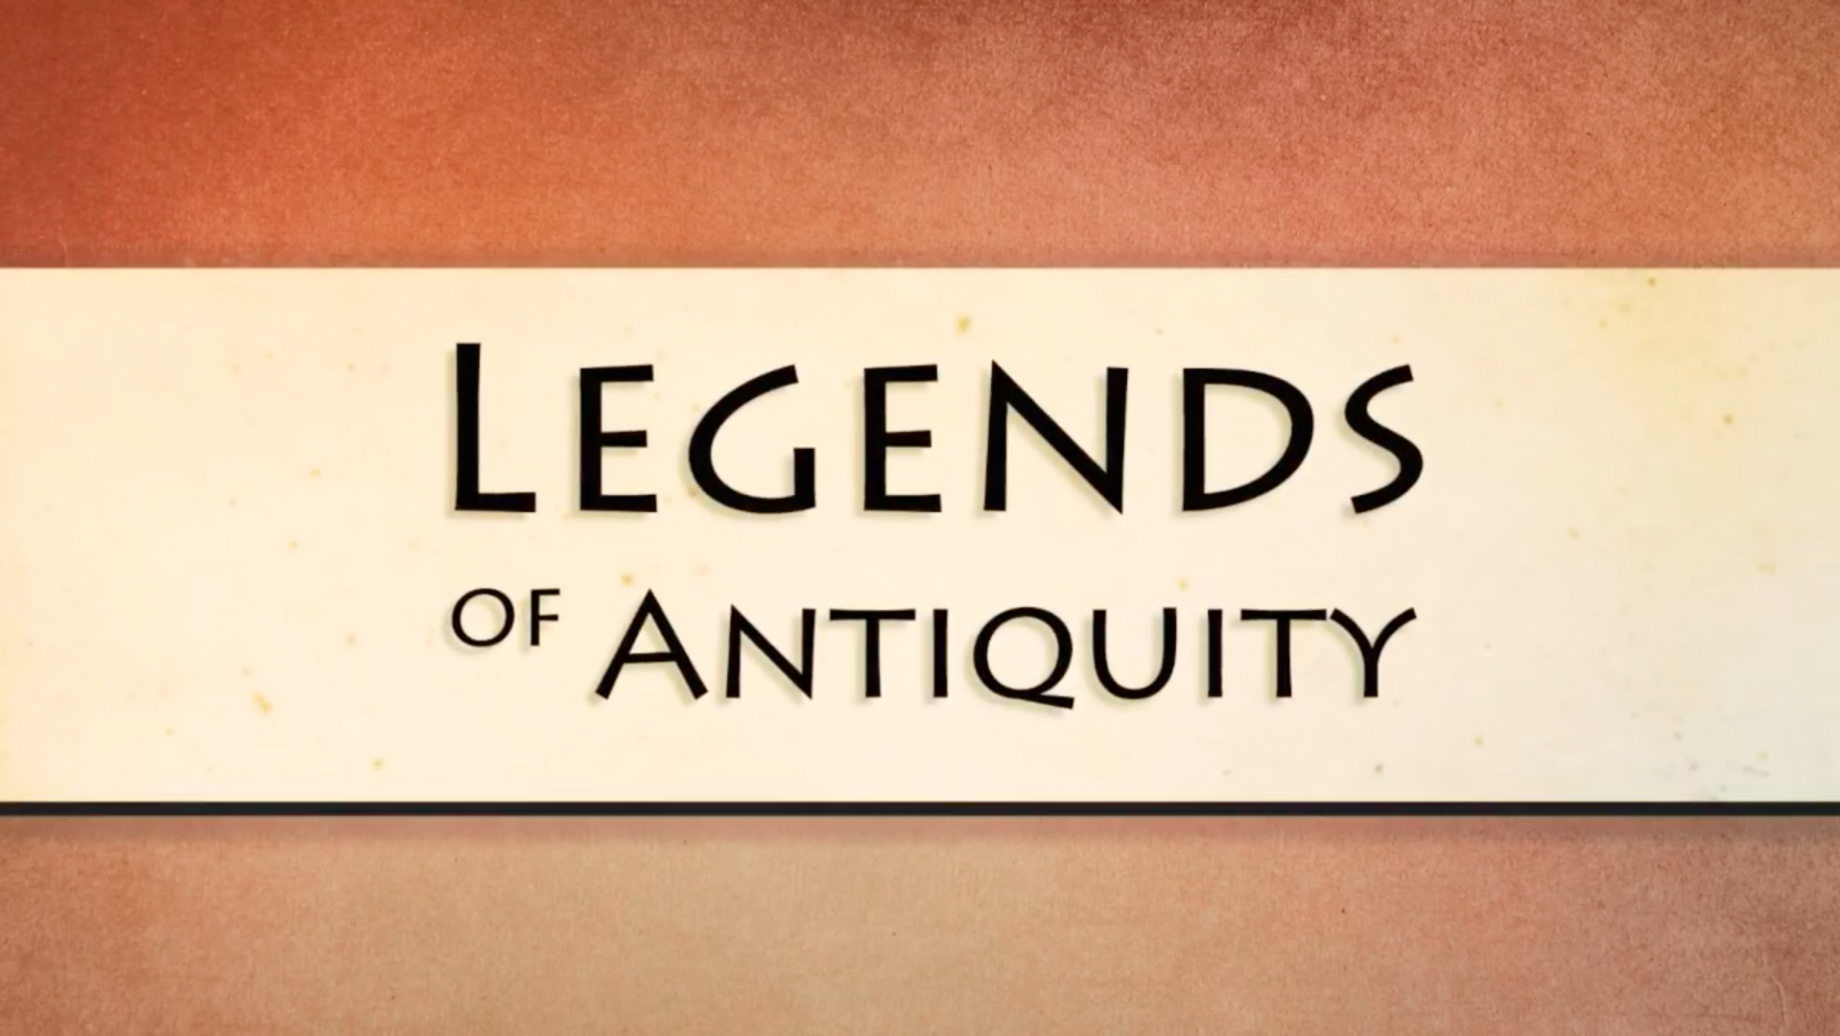 Legends of Antiquity